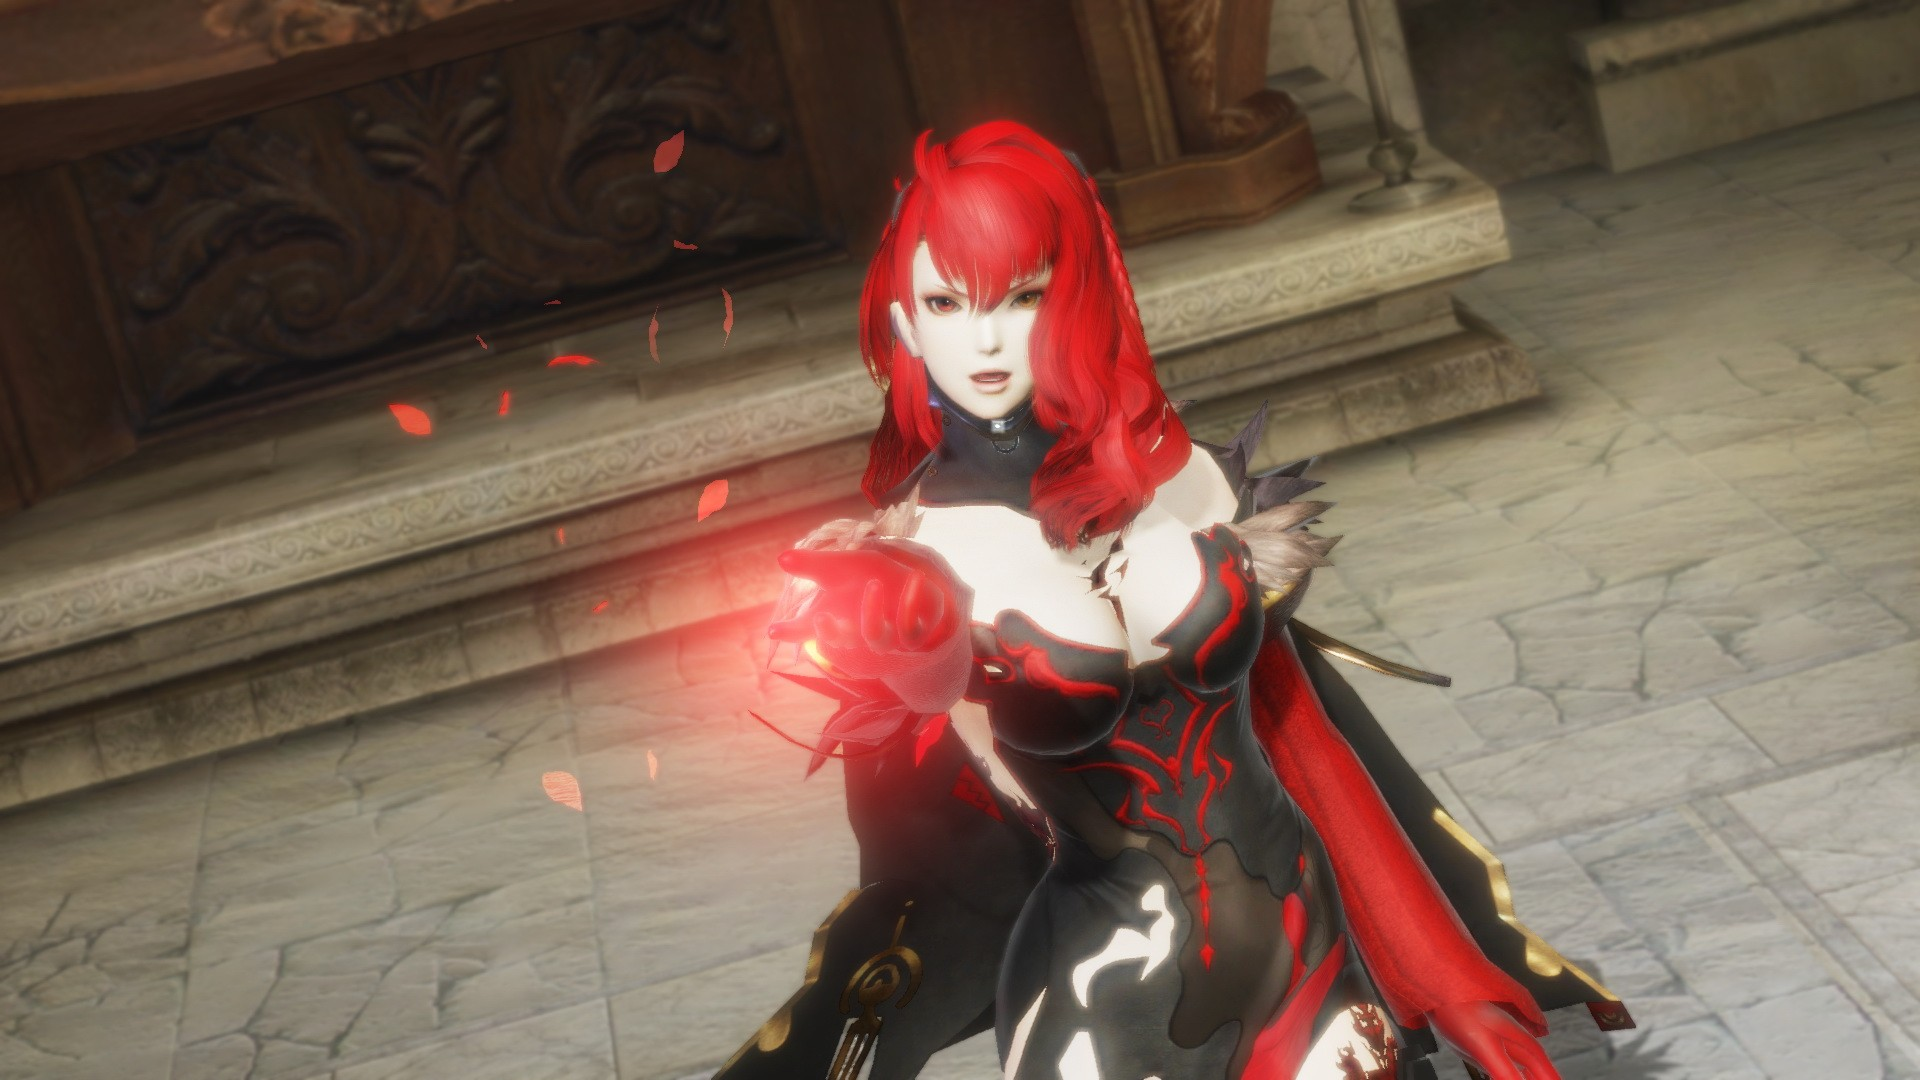 deception iv the nightmare princess 24062015 1